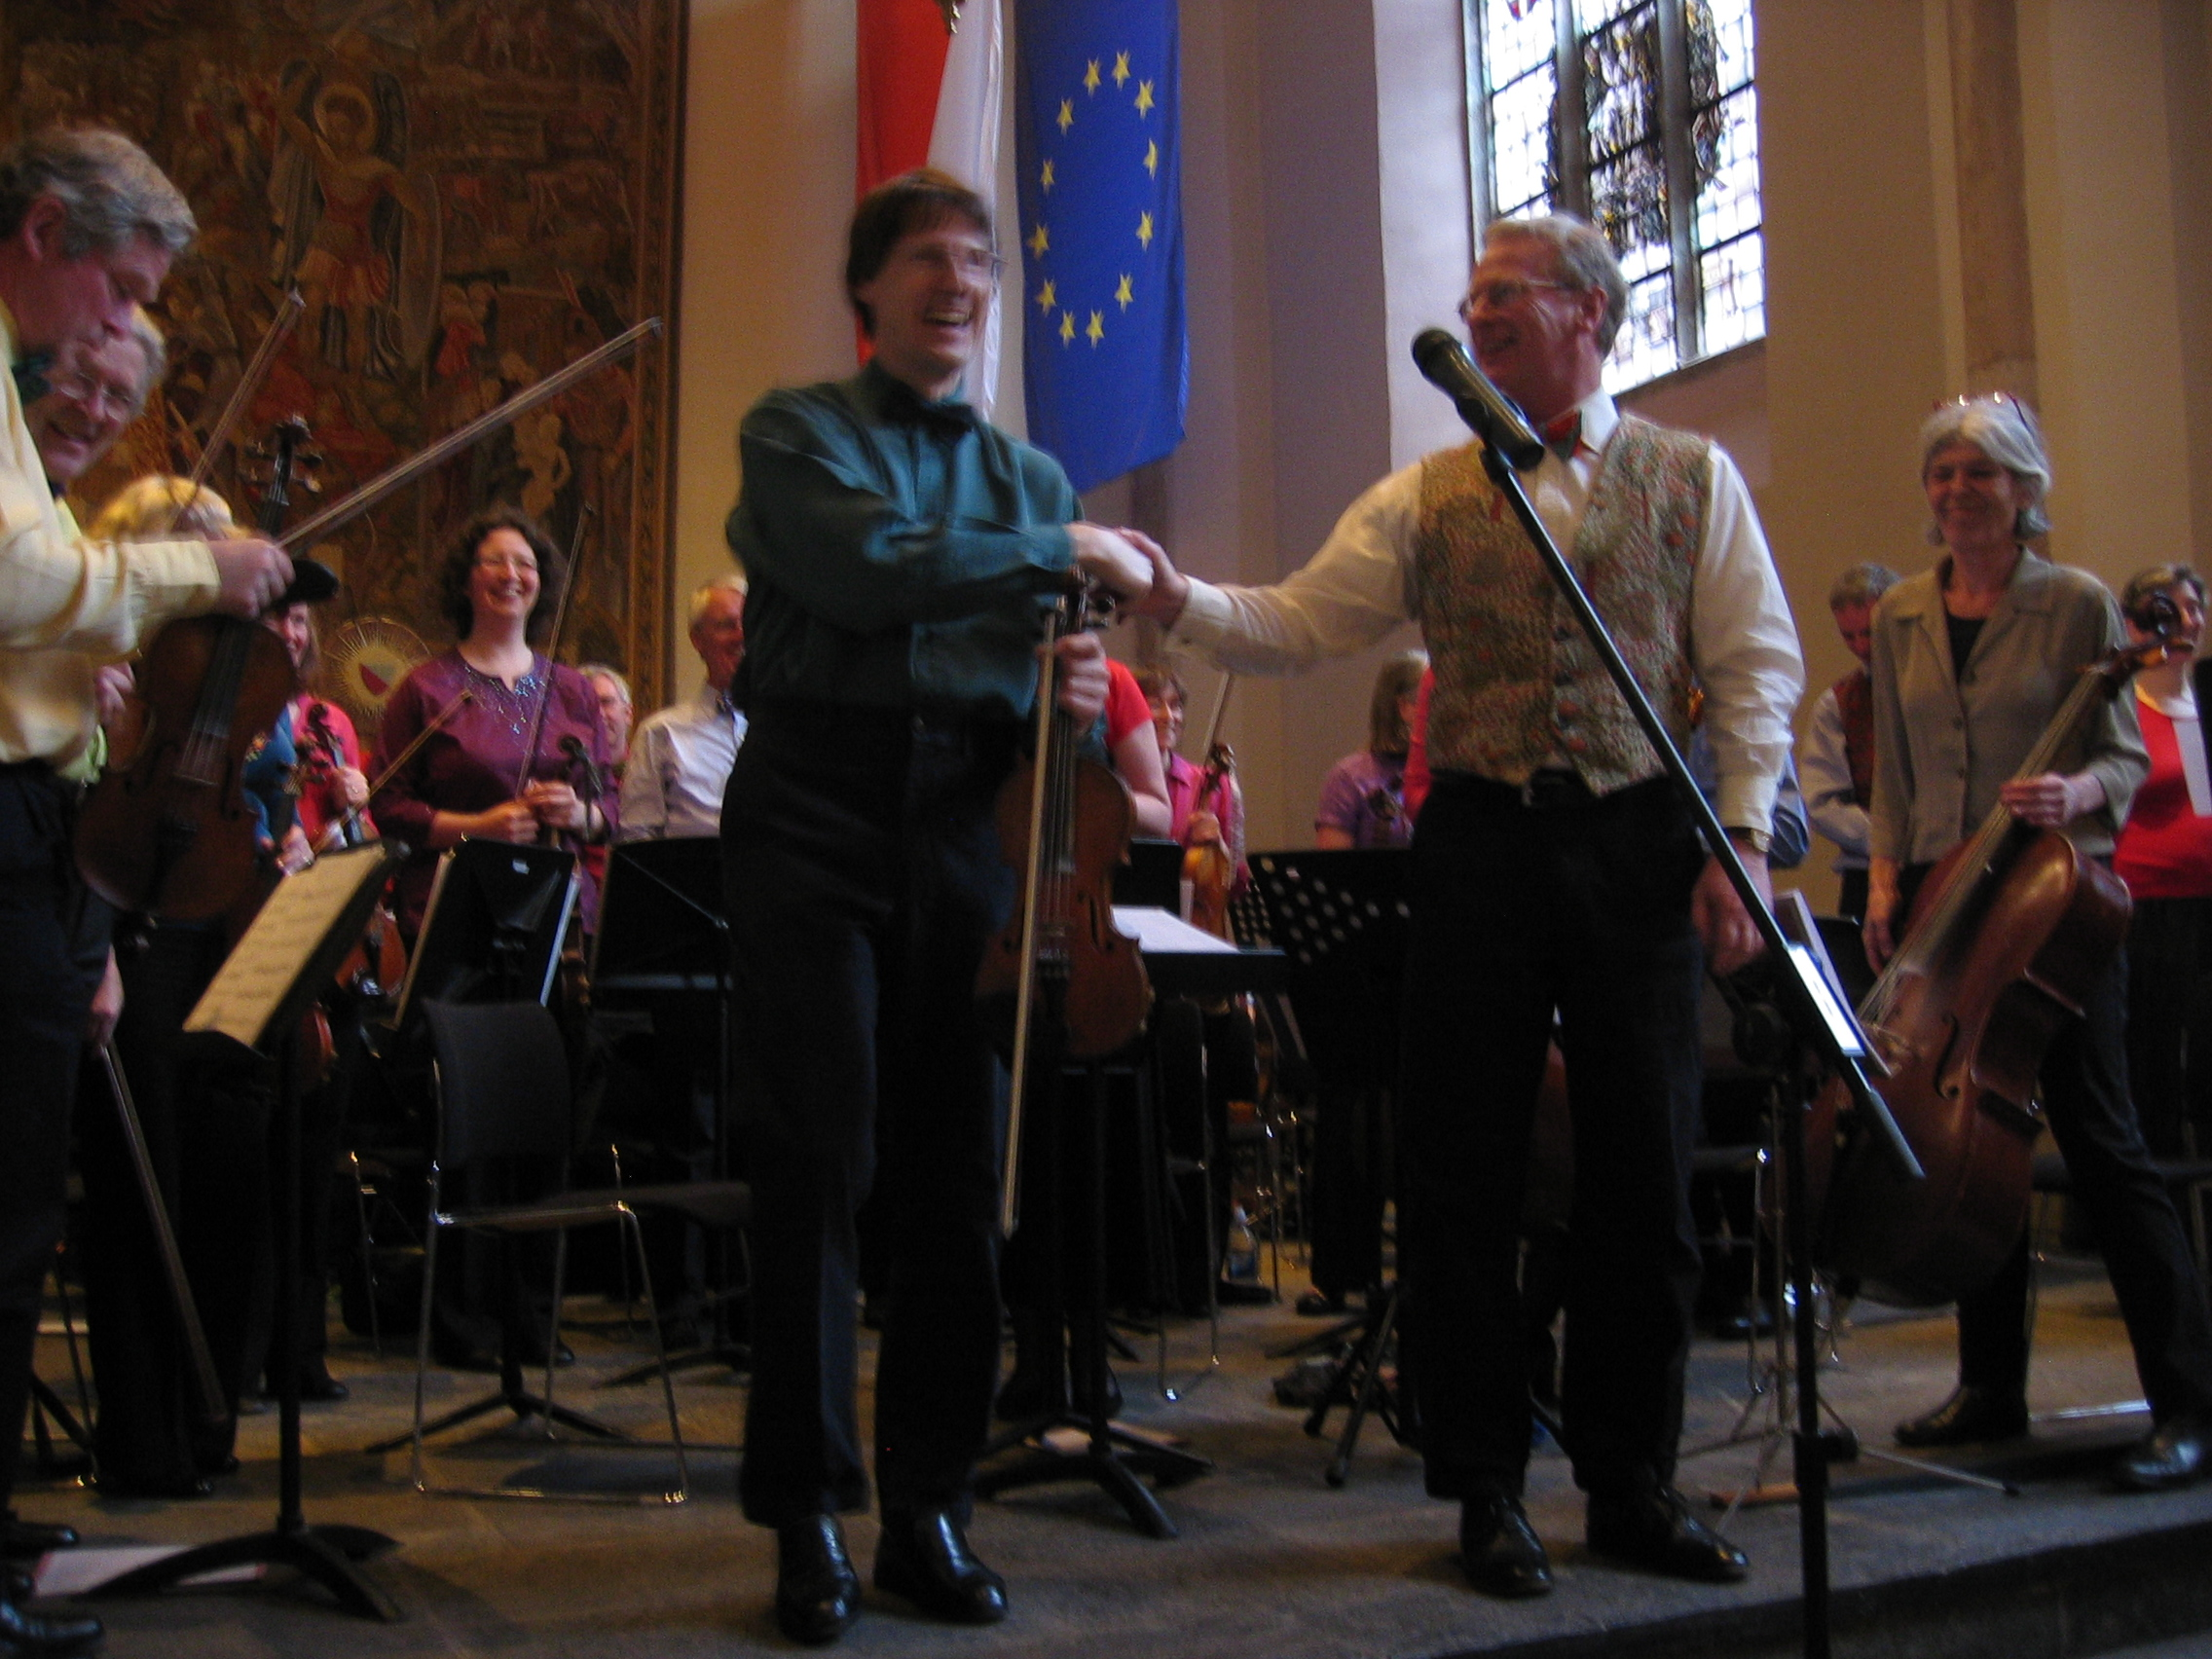 Sir Richard shakes hand with Mike Salvesen, leader of the orchestra